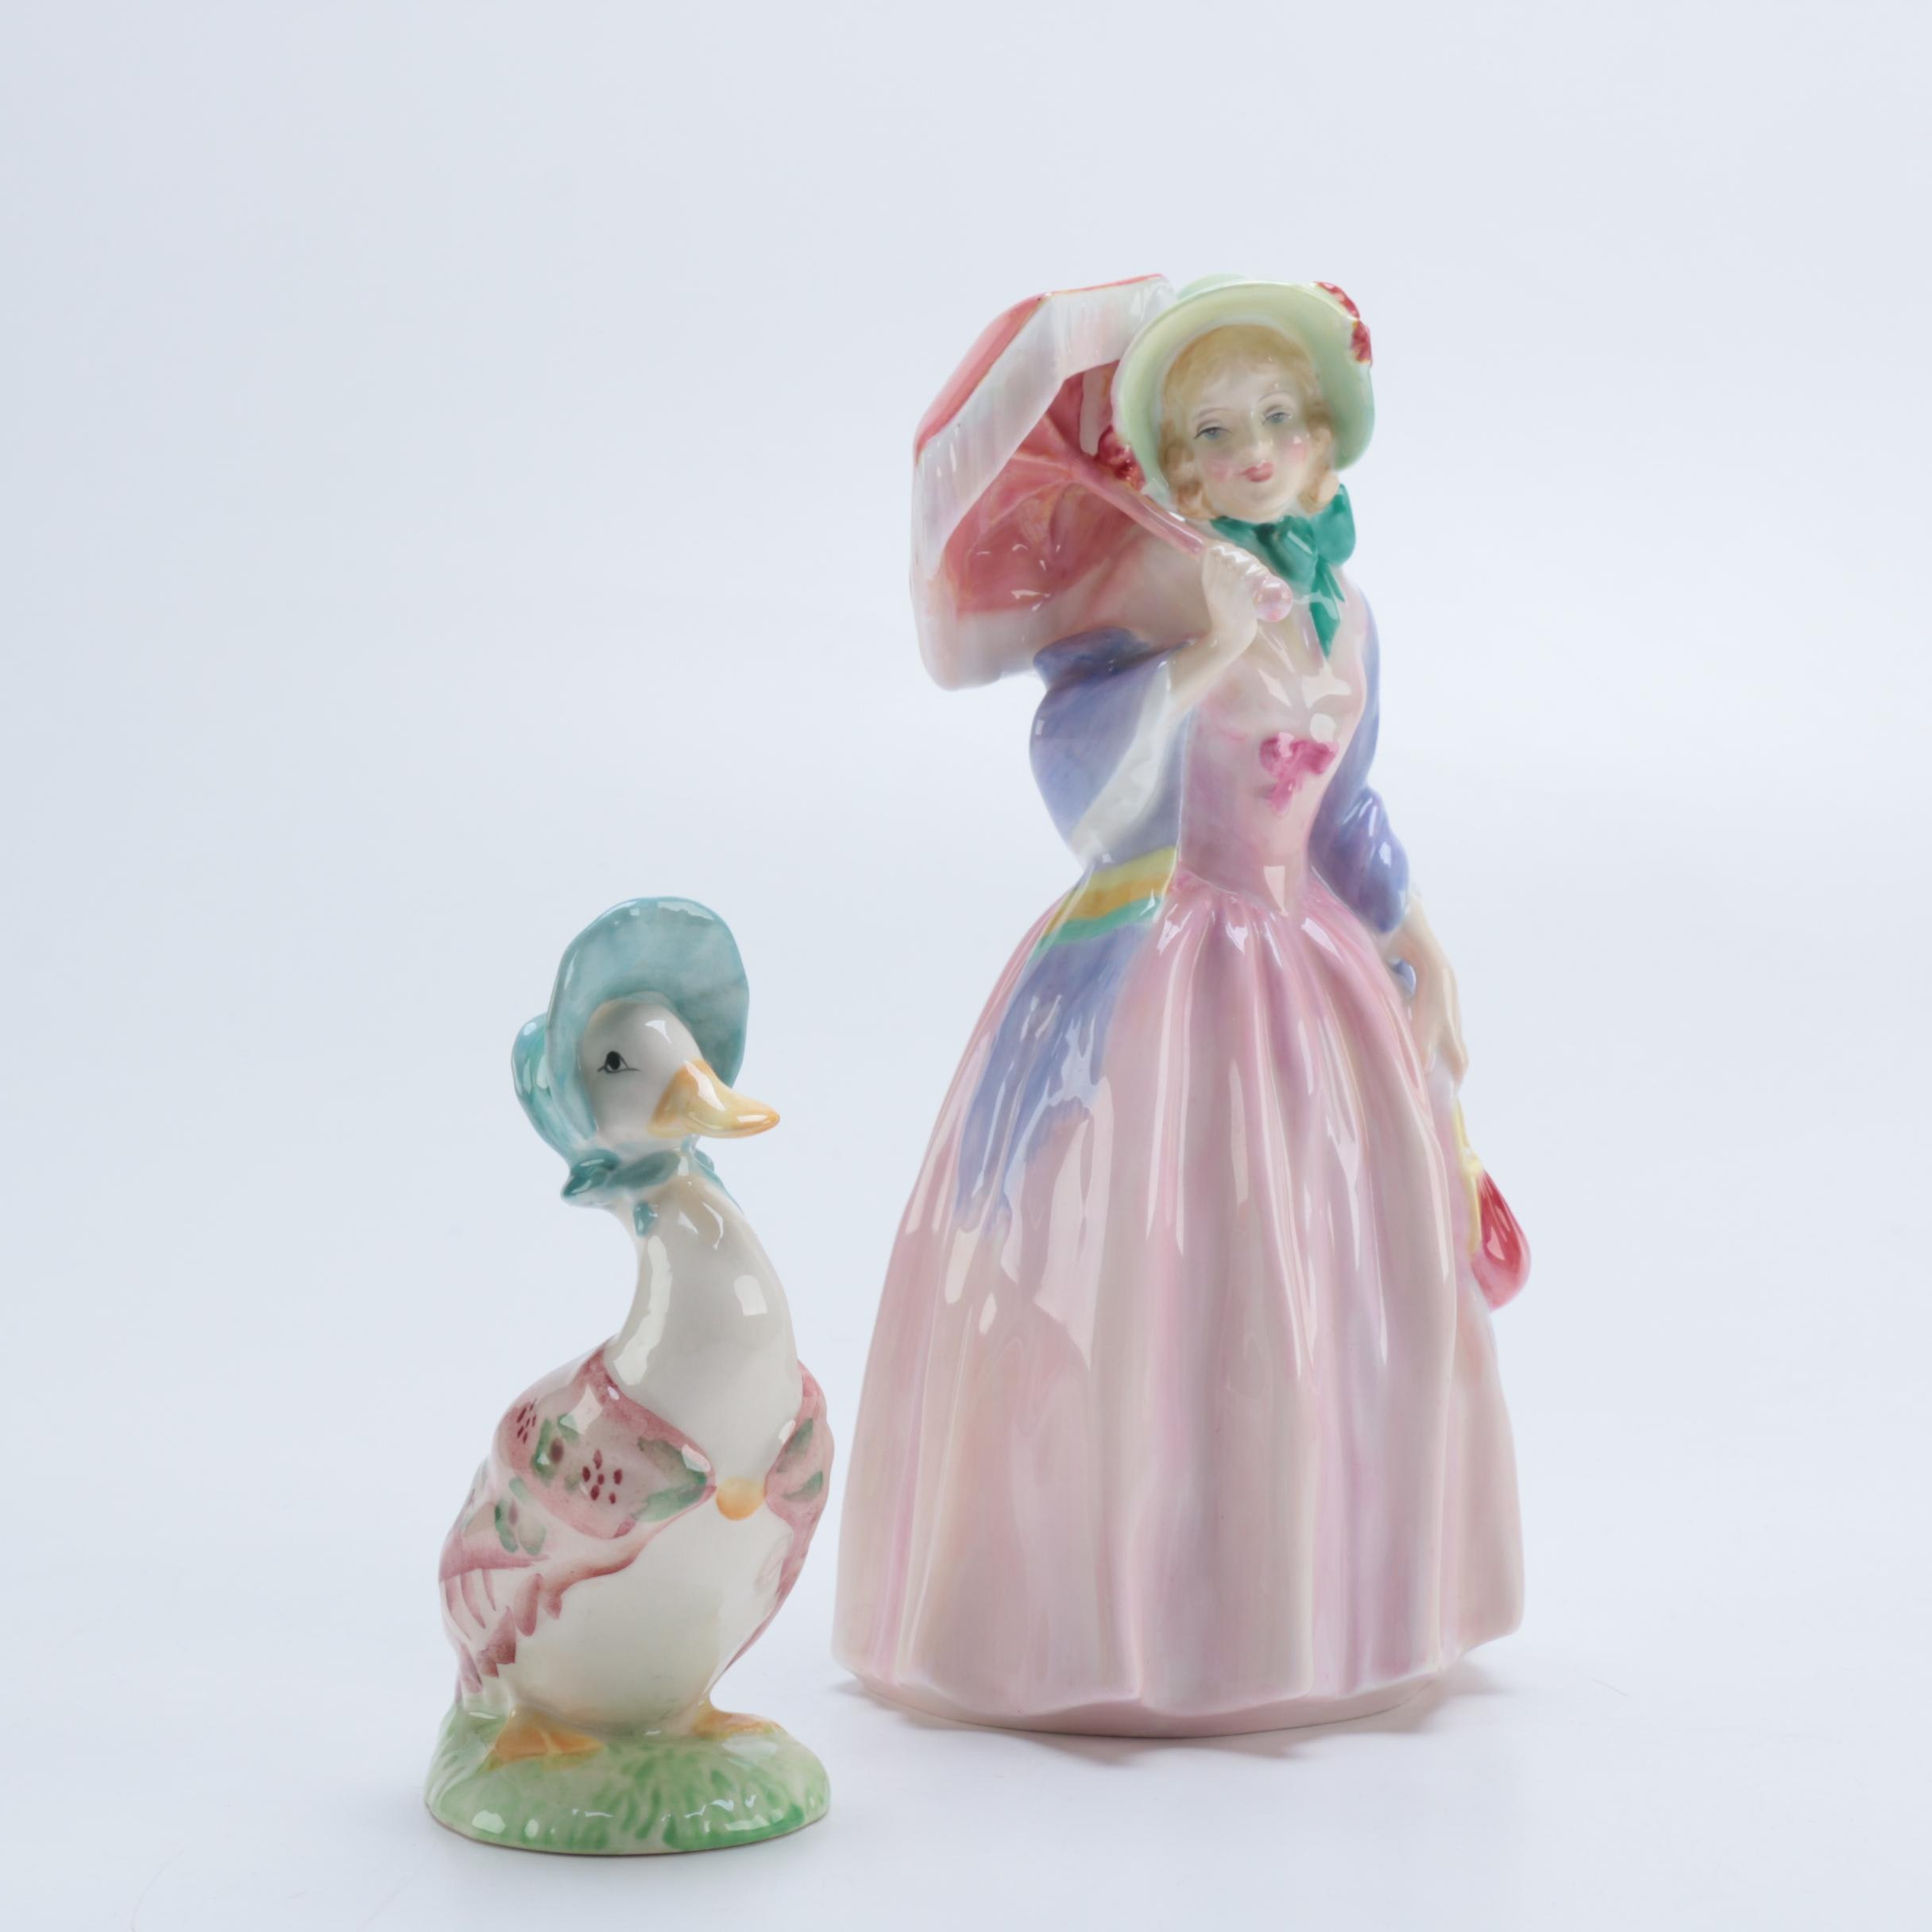 Figurines Including Royal Albert Beatrix Potter and Royal Doulton Lady